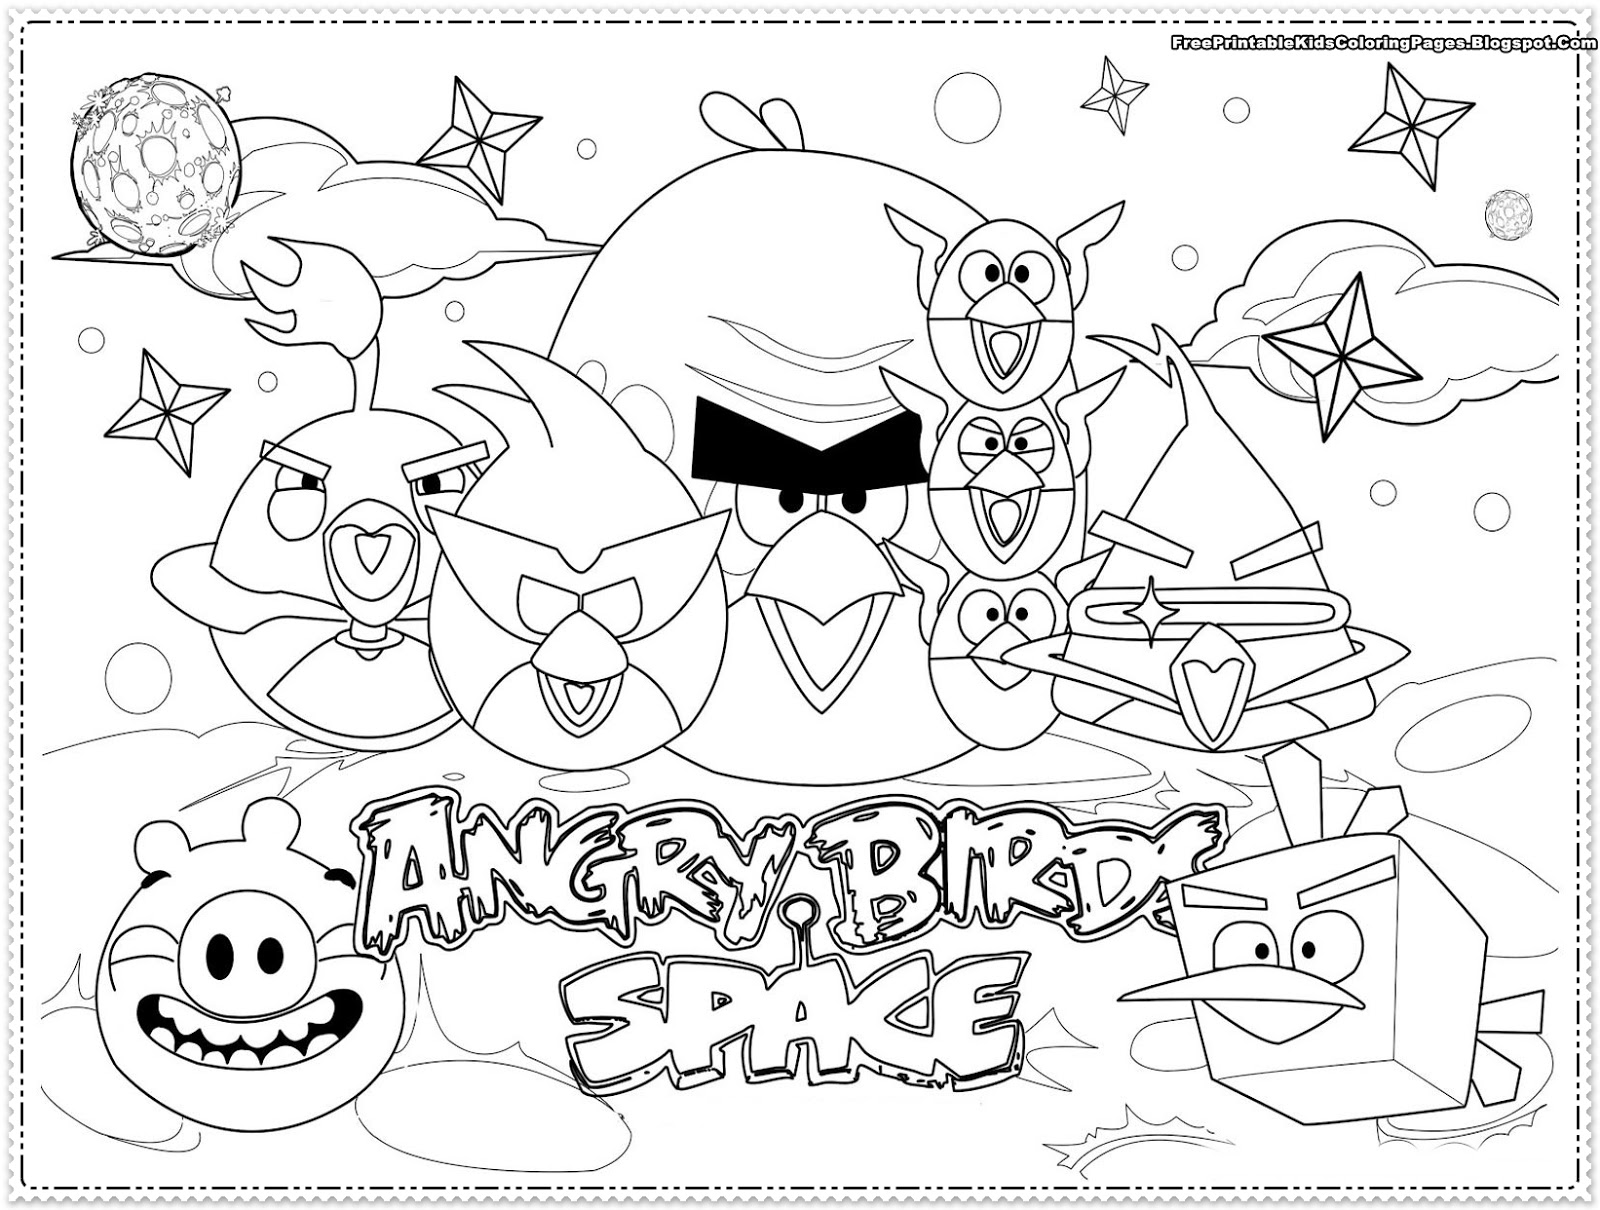 angry birds pictures to color and print angry birds kids coloring pages free printable kids and angry pictures print to birds color